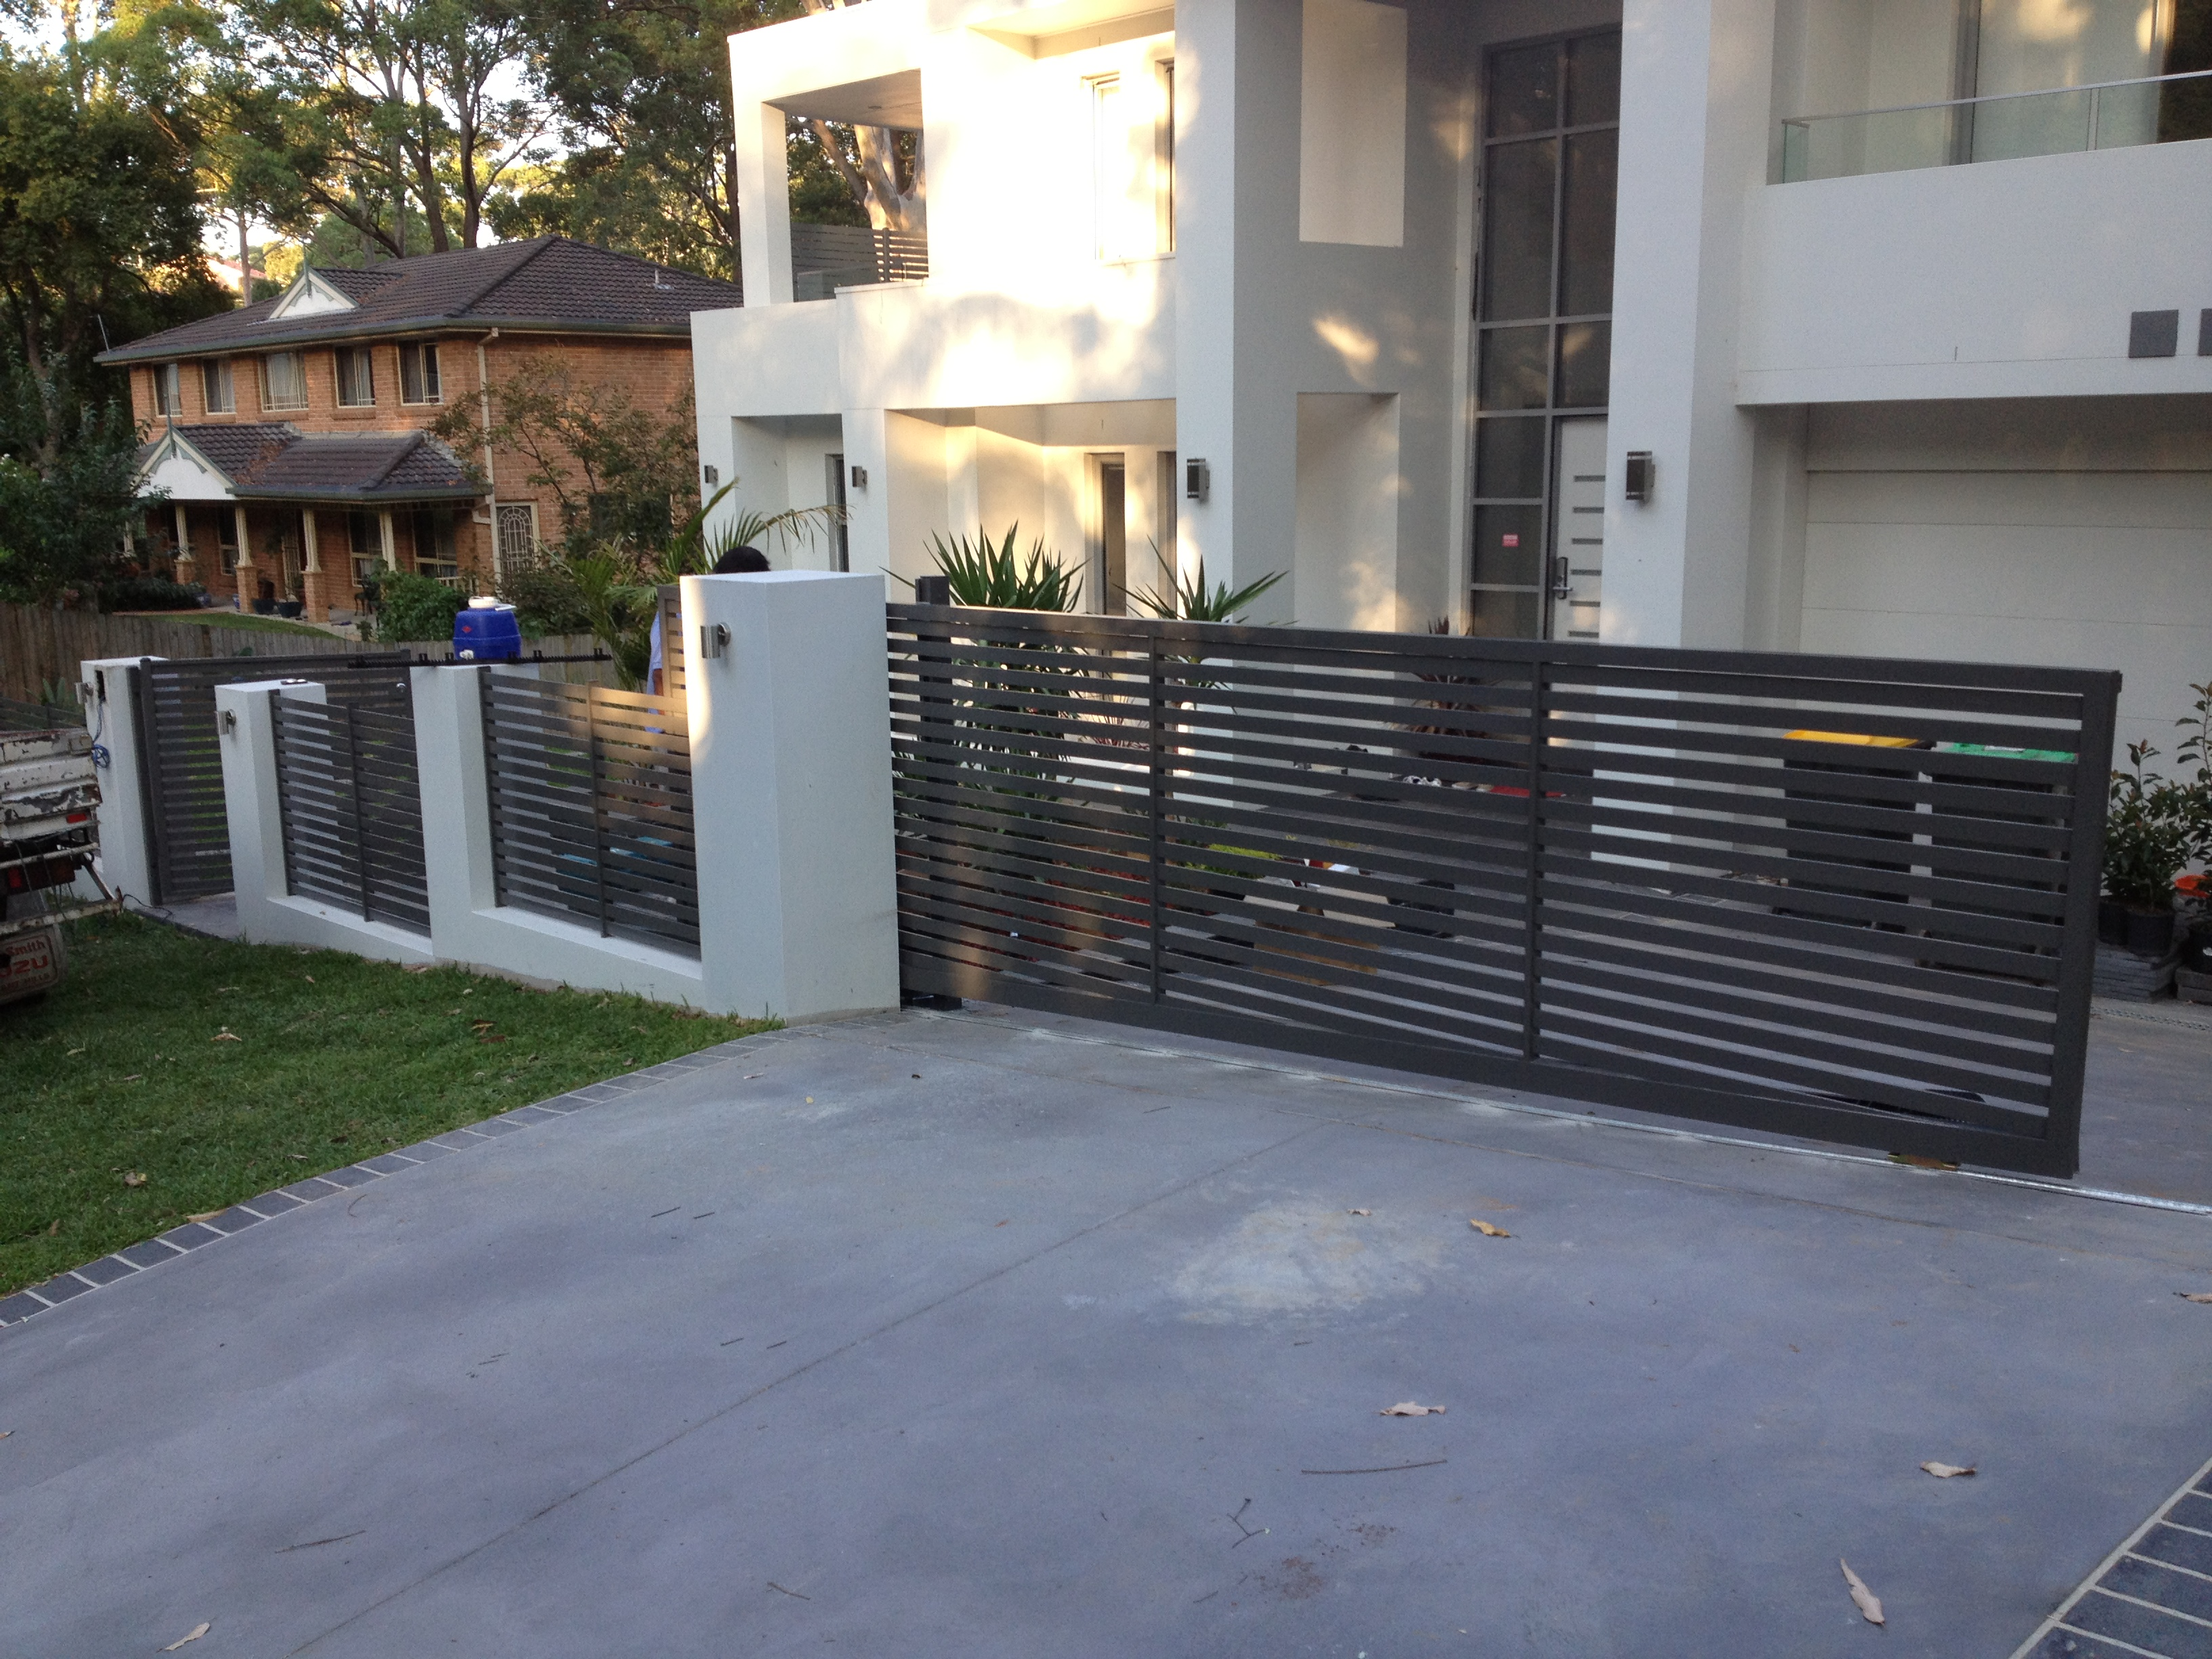 Stainless Steel Gate Various Types Of Auto Gate System